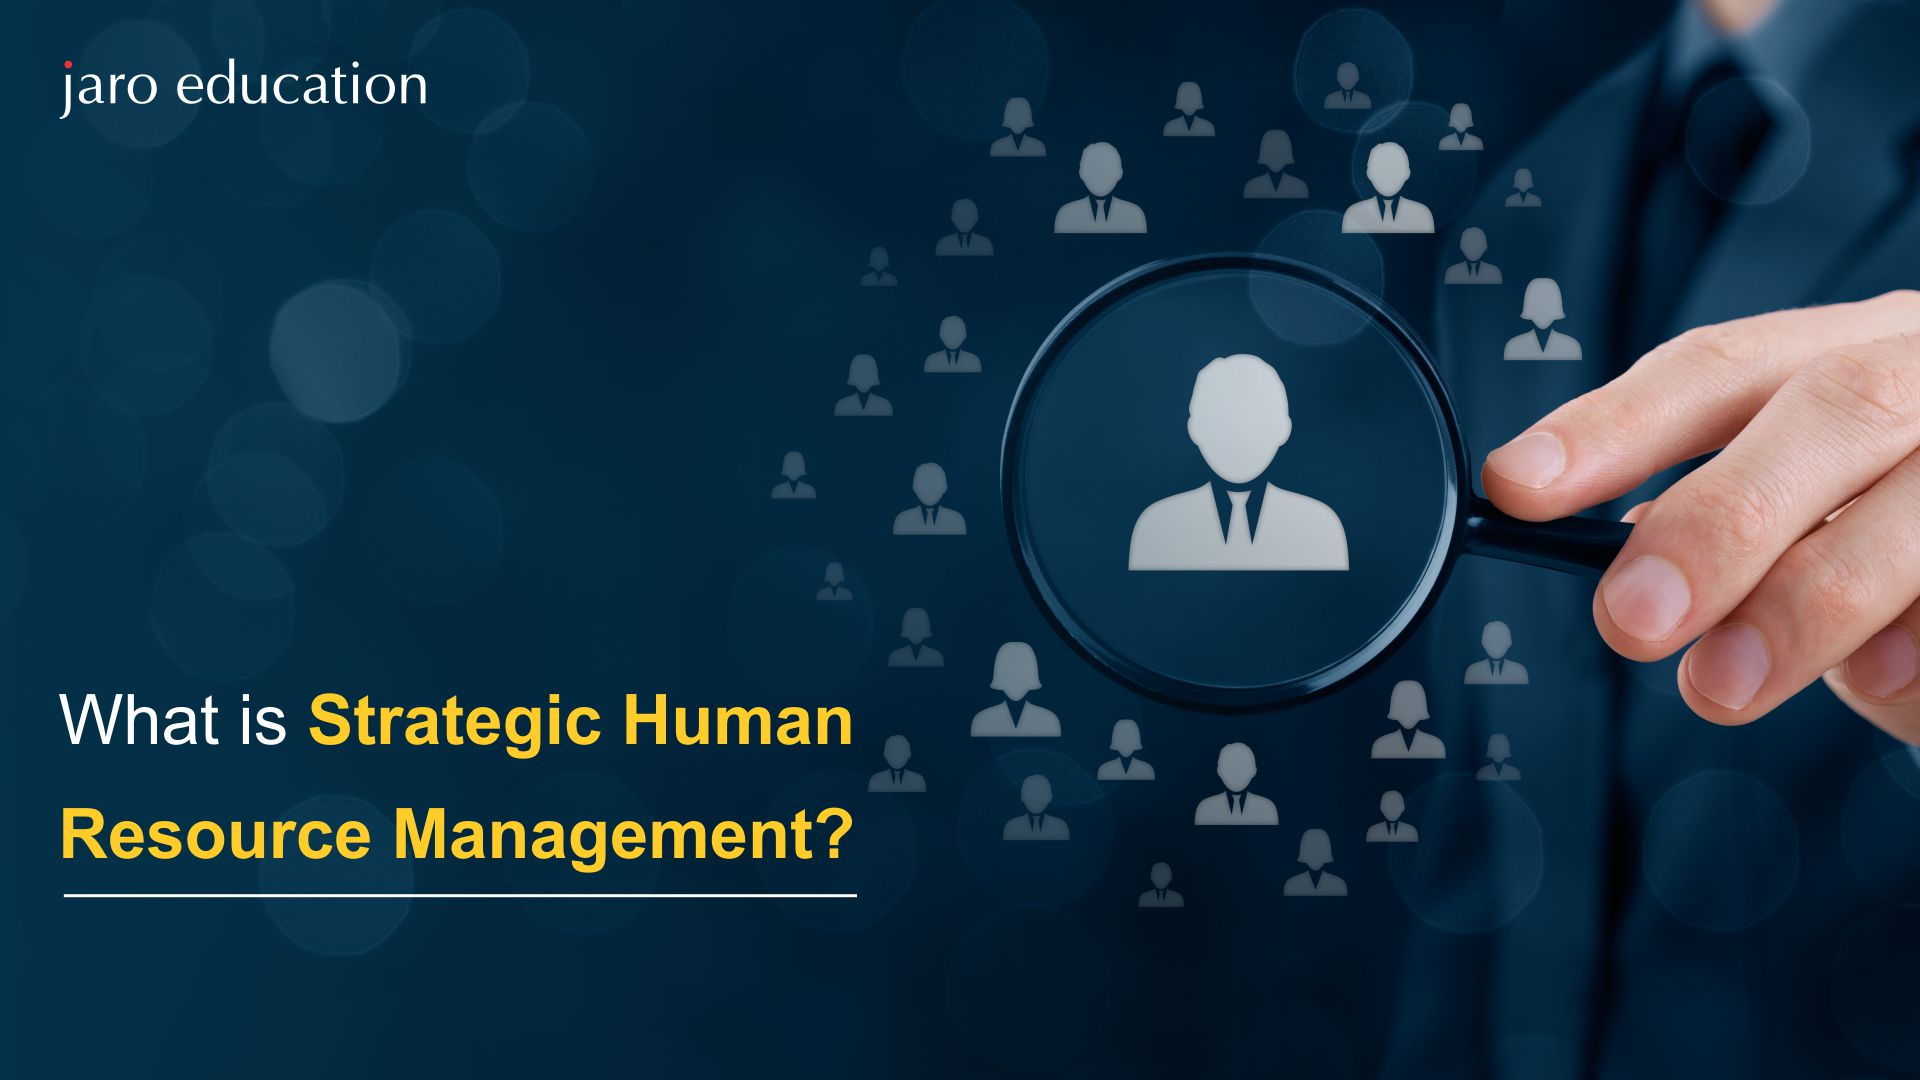 What is Strategic Human Resource Management